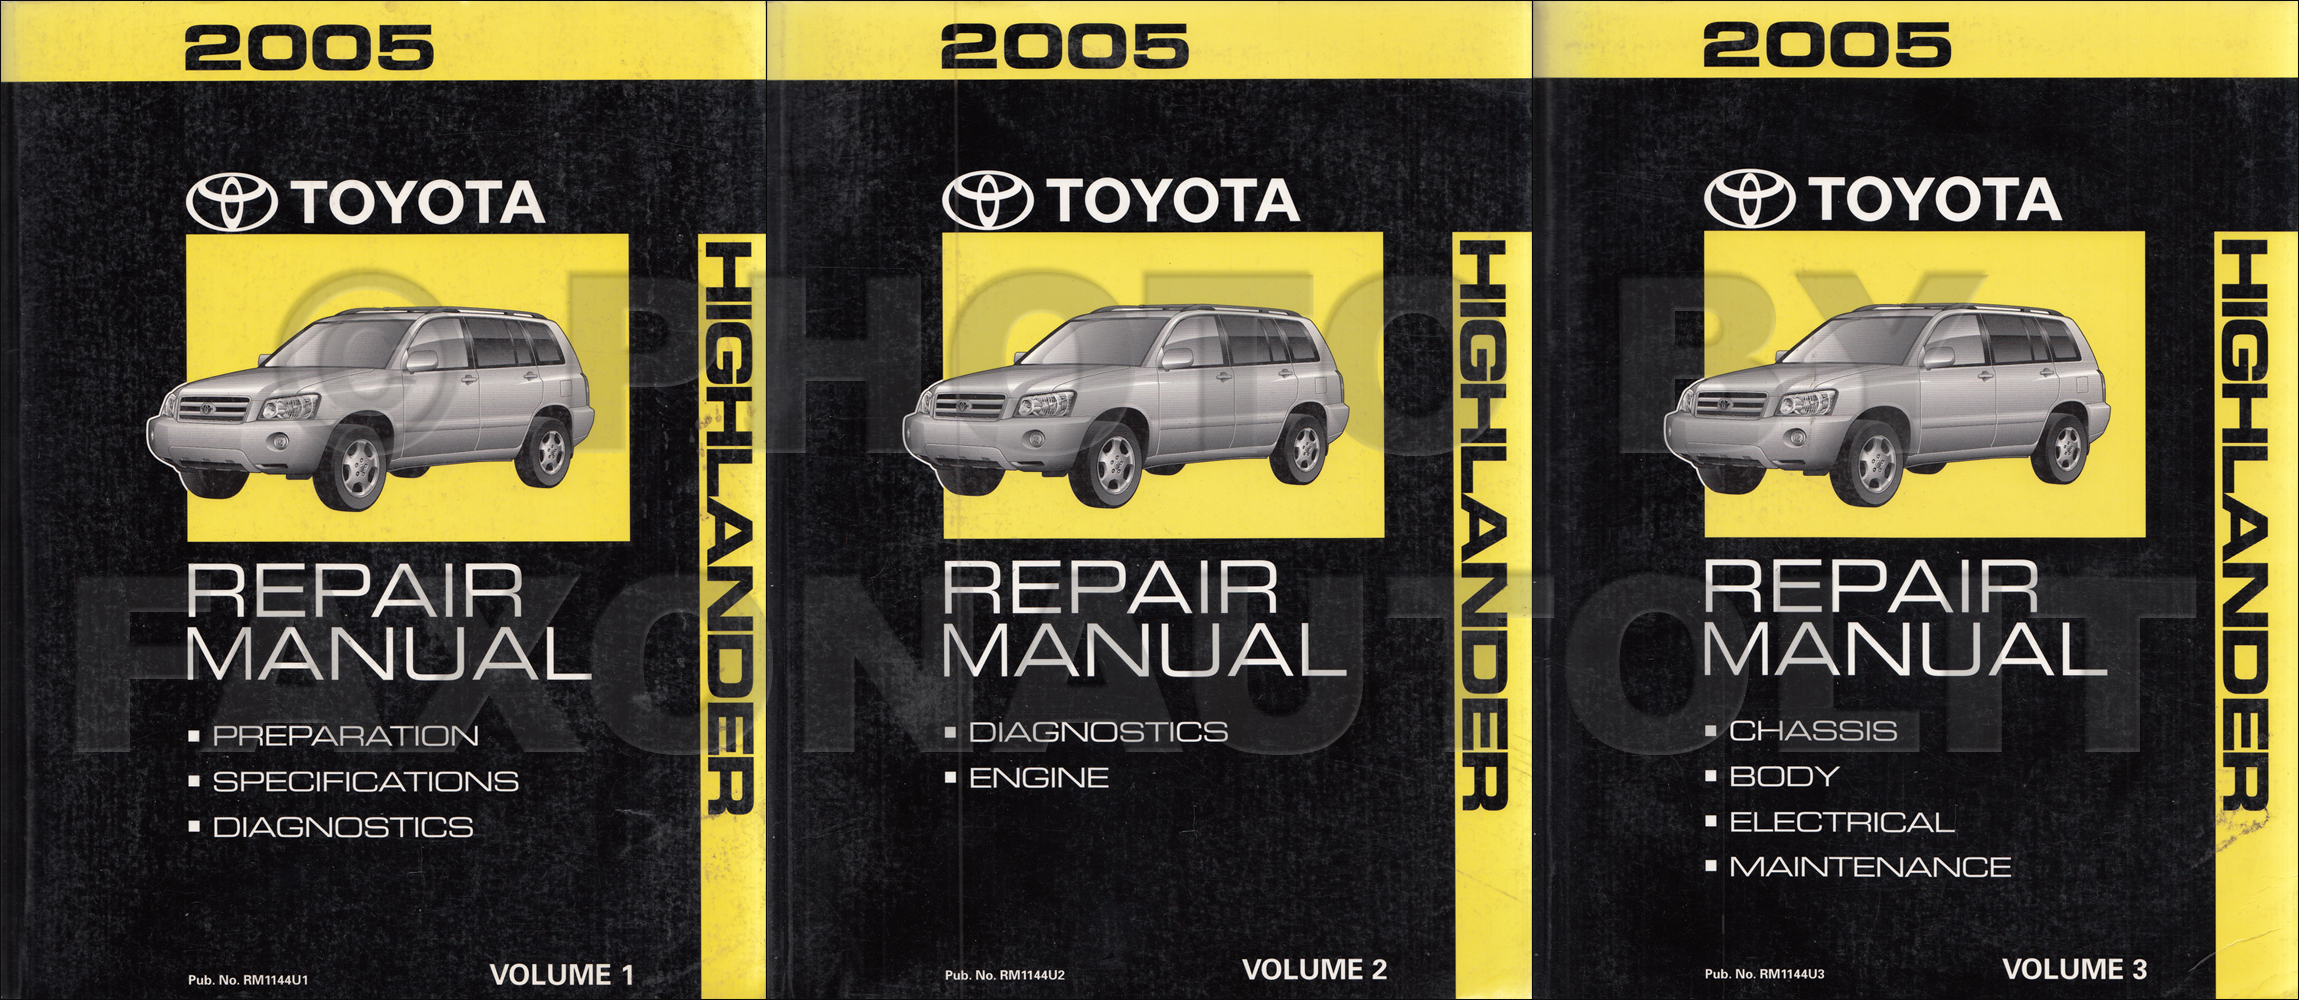 2005 Toyota Highlander Wiring Diagram Manual Original 2004 Related Products